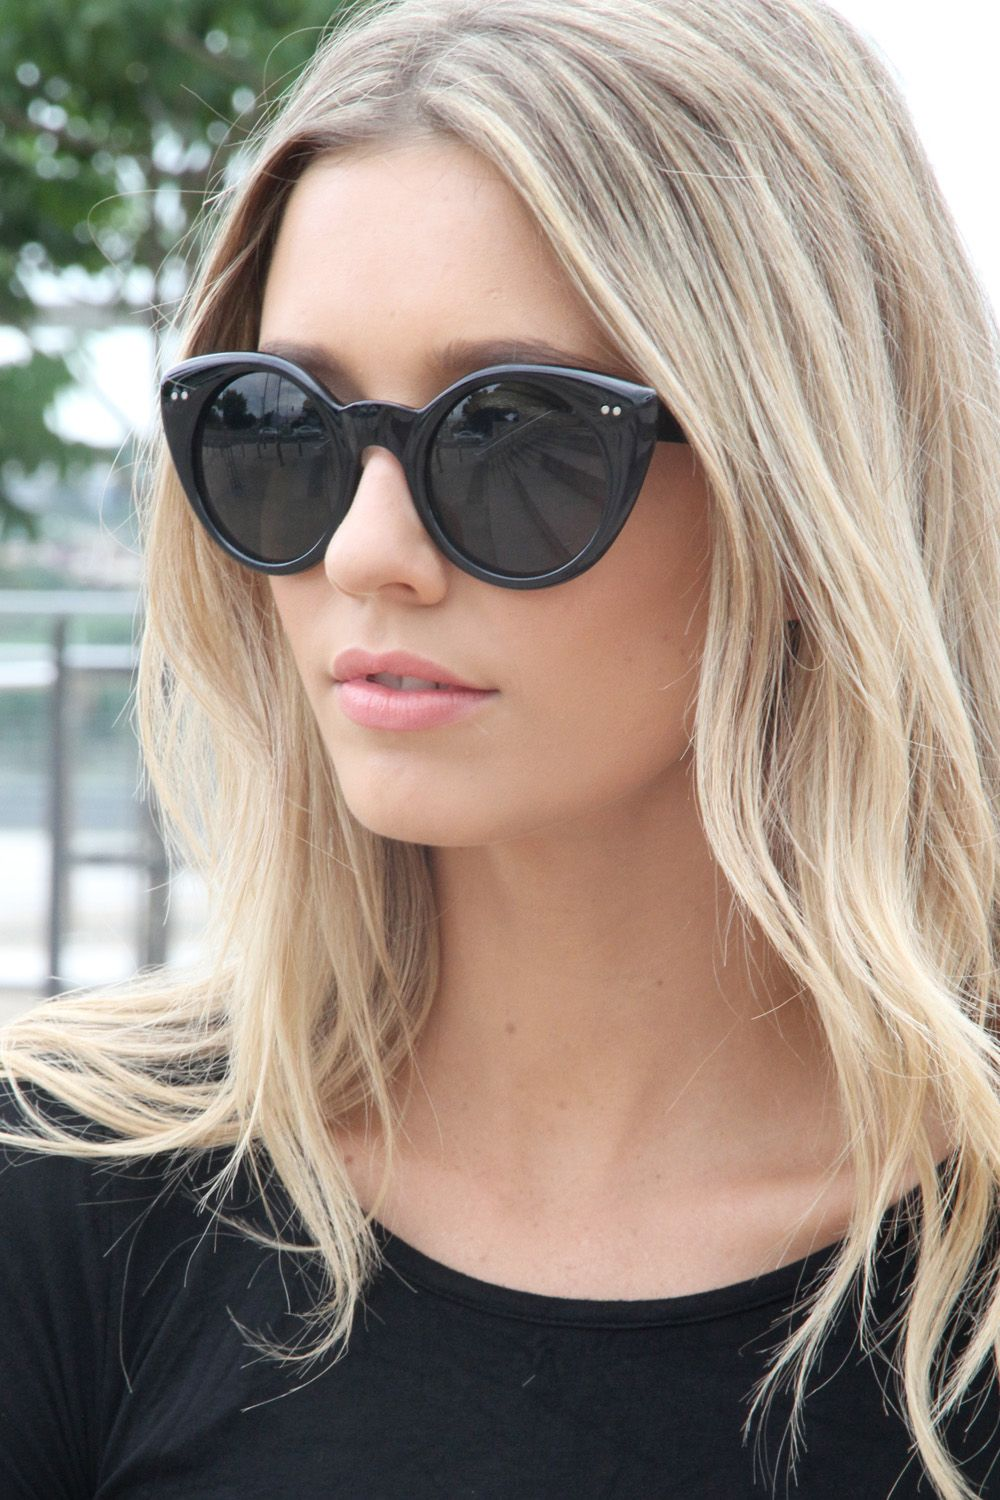 sunglasses hair this look has been part of my summer look inspiration. Black Bedroom Furniture Sets. Home Design Ideas